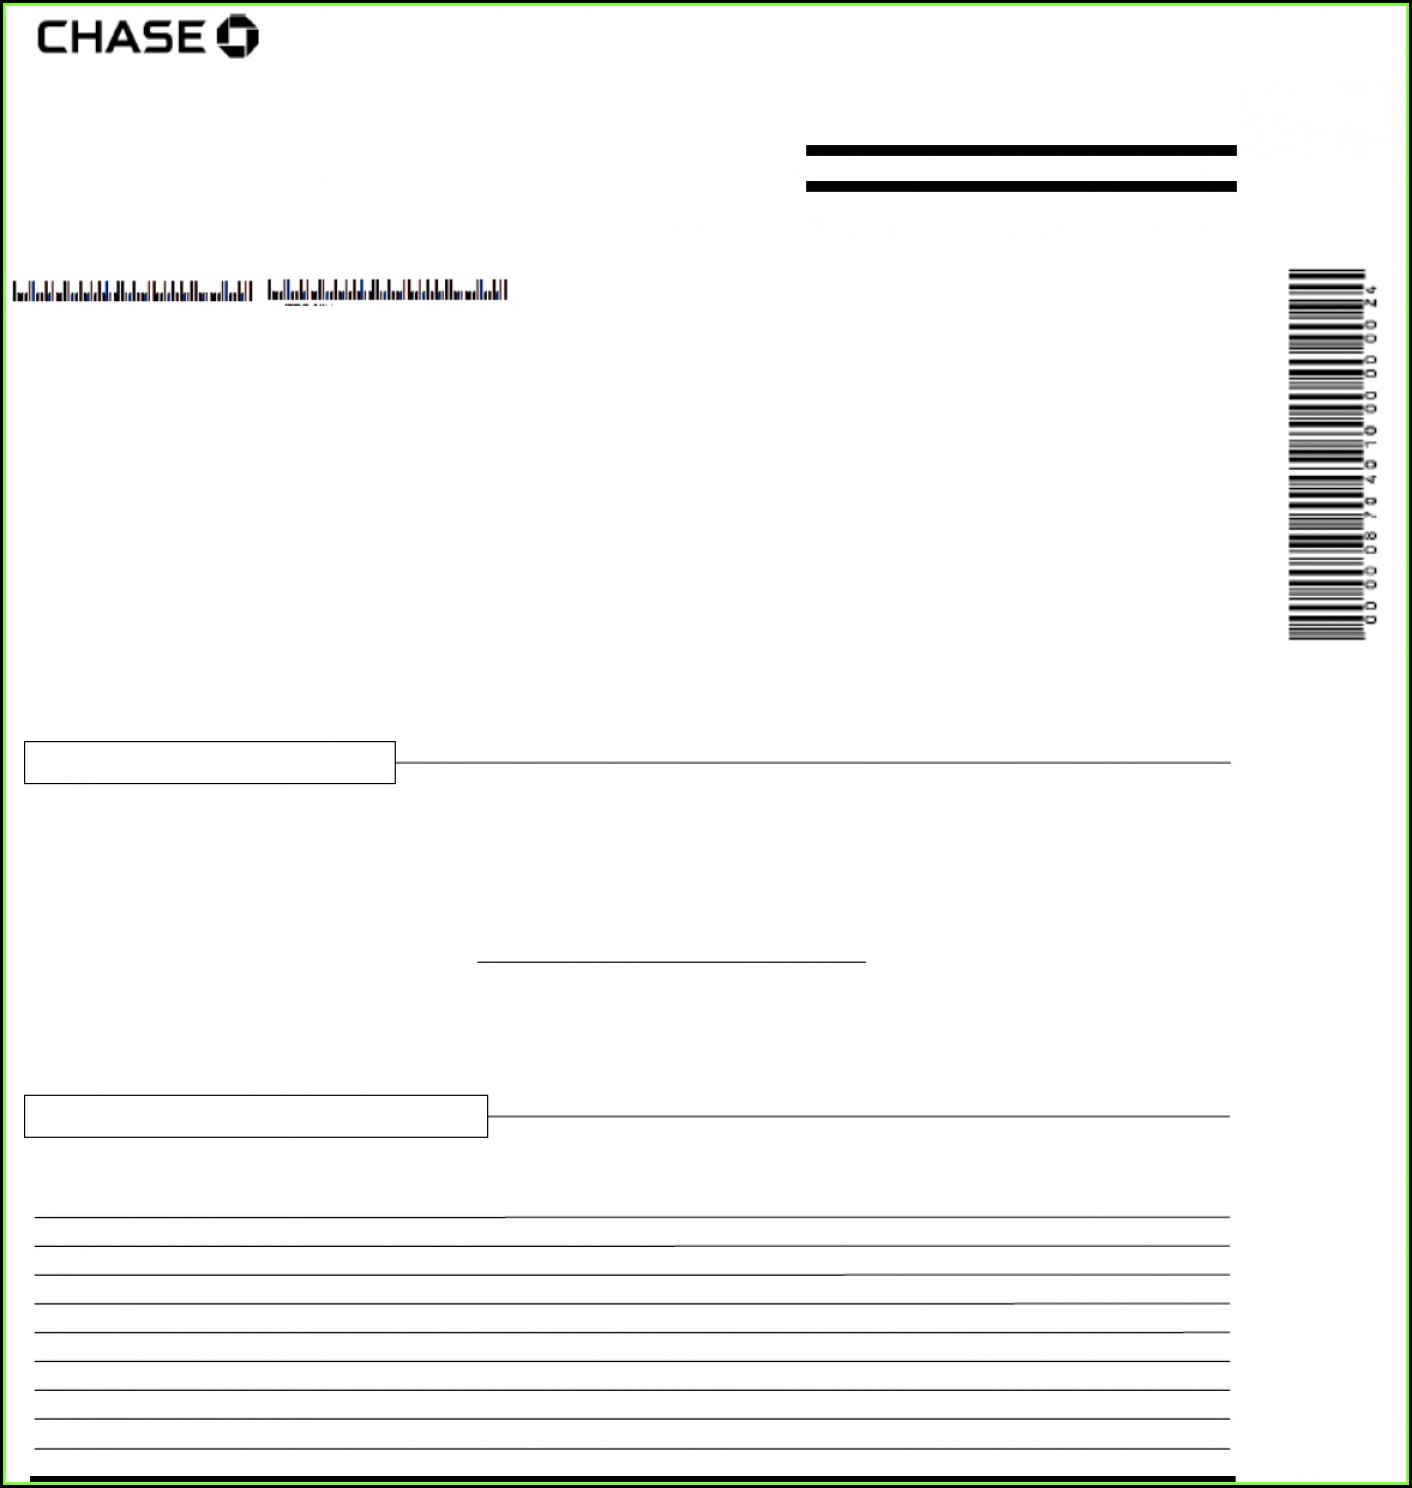 Chase Bank Statement Template Excel